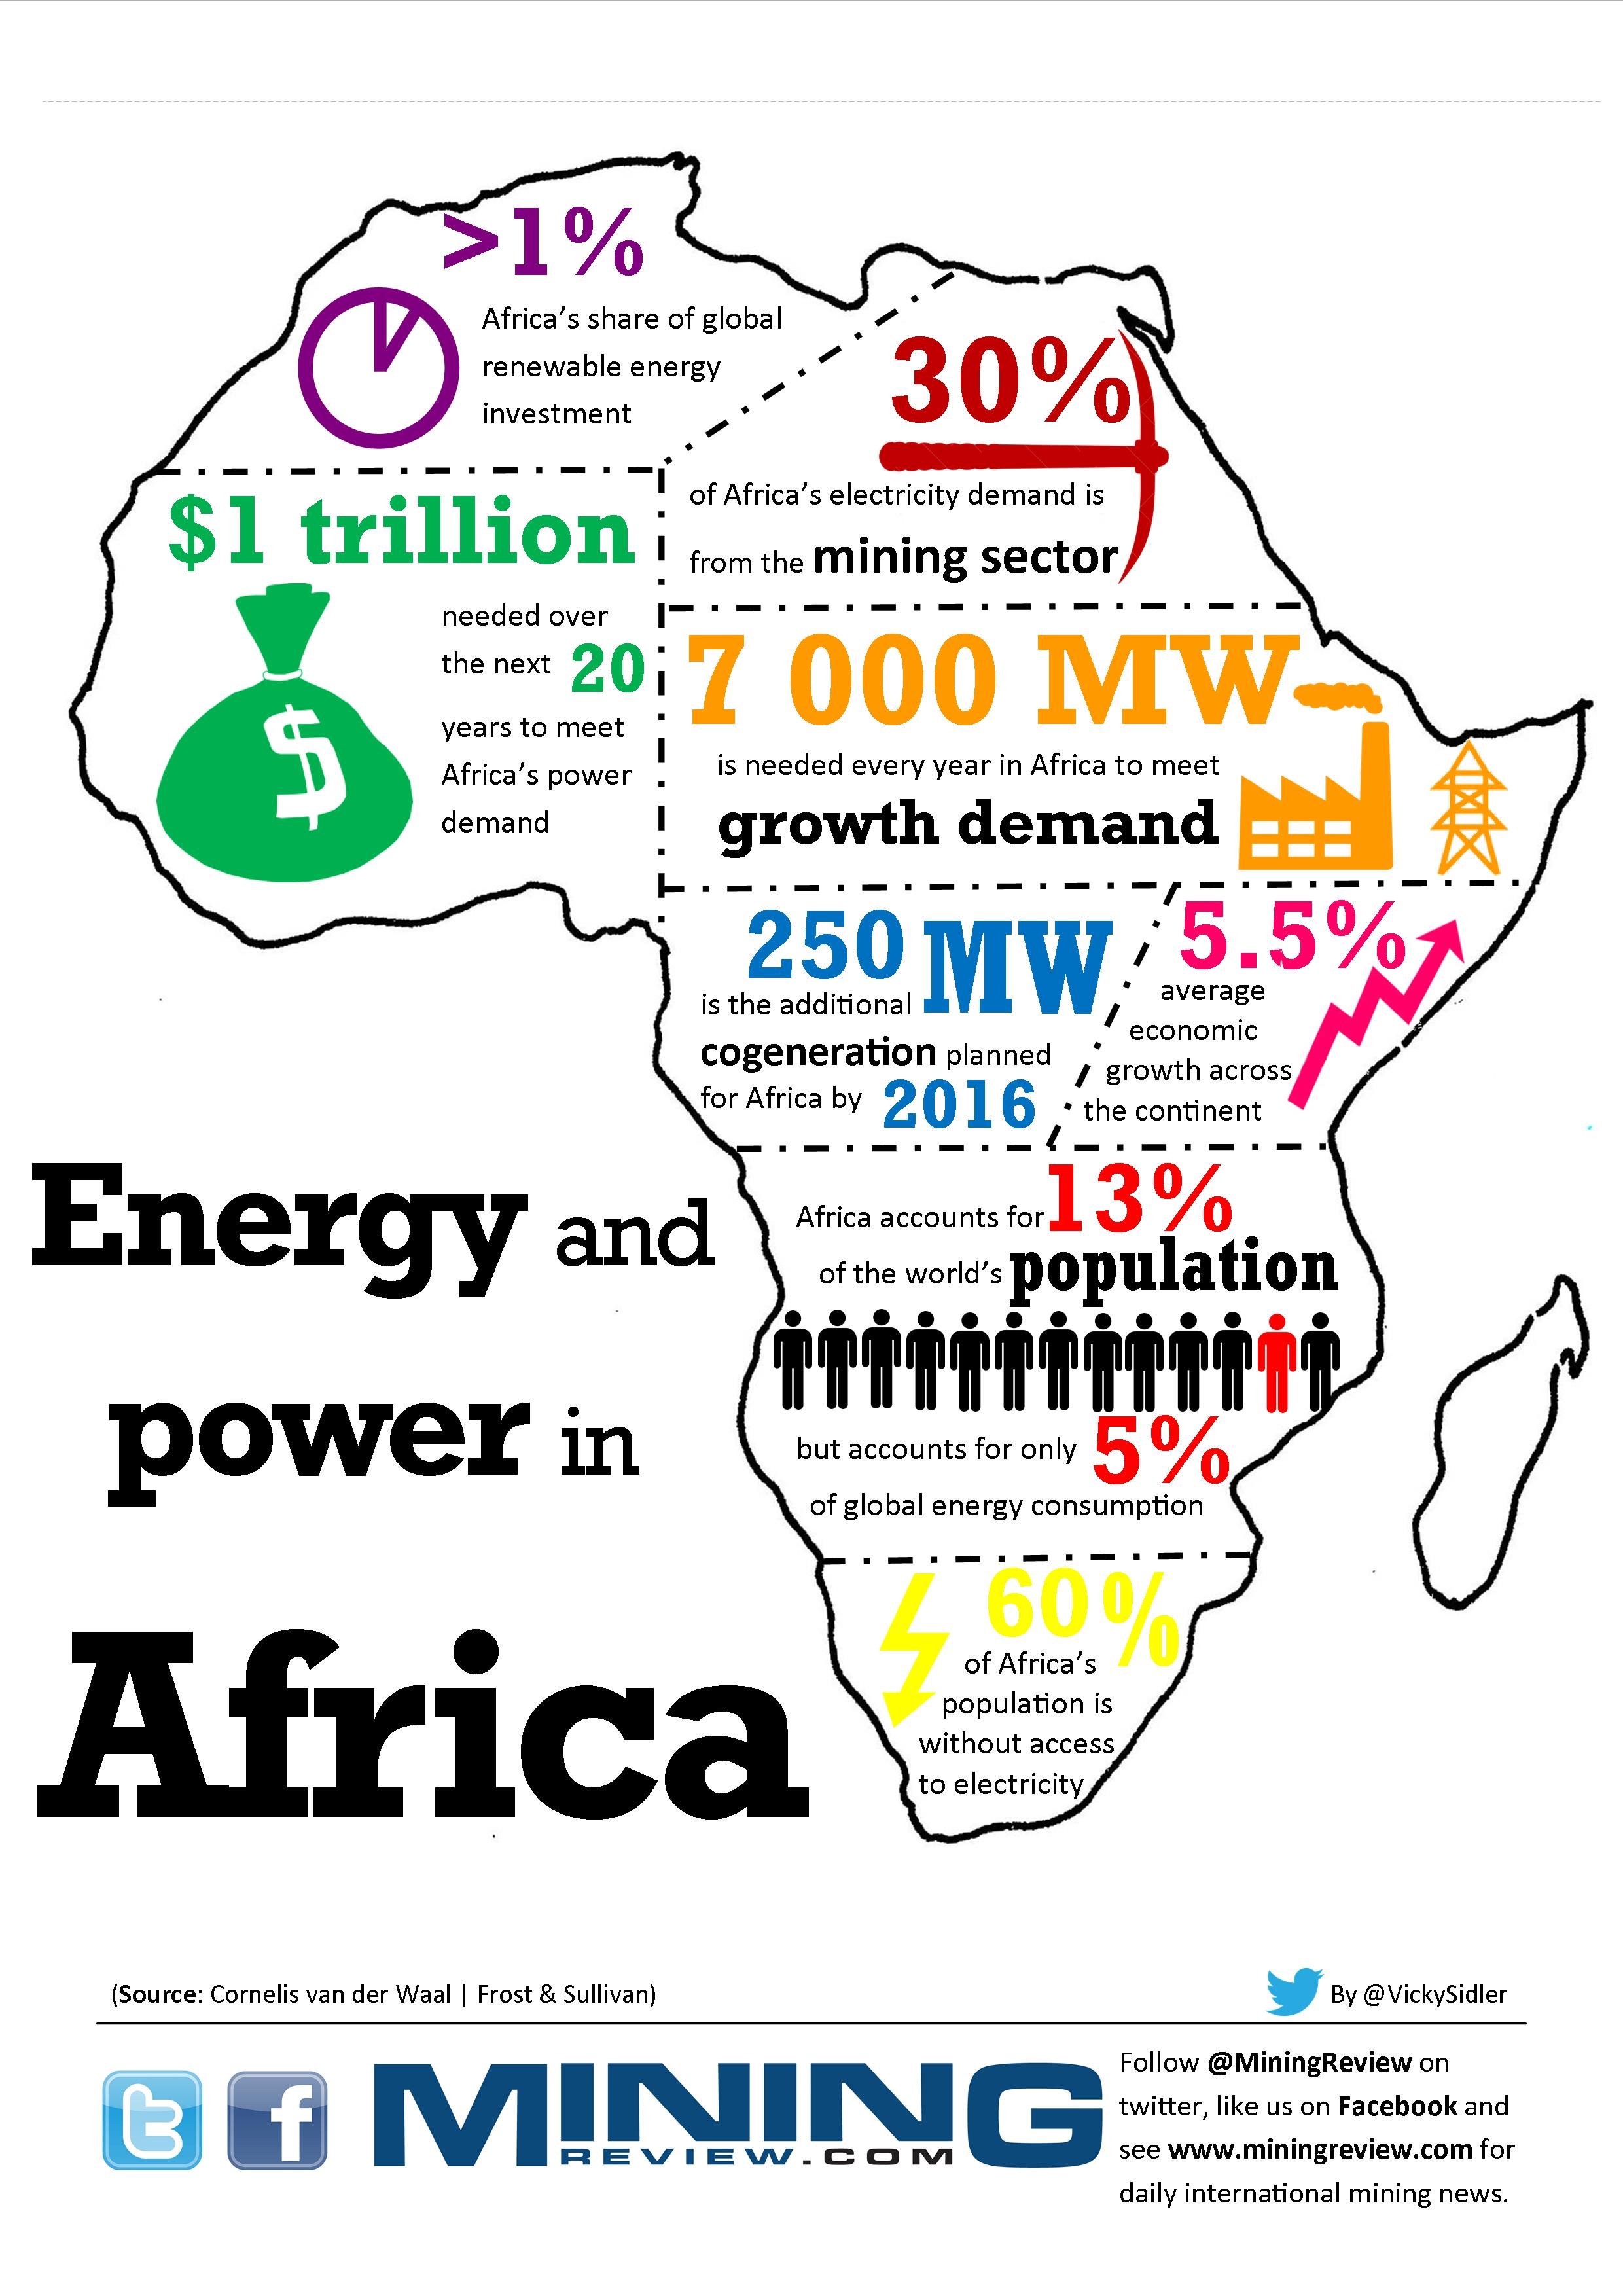 Energy and power in Africa infographic